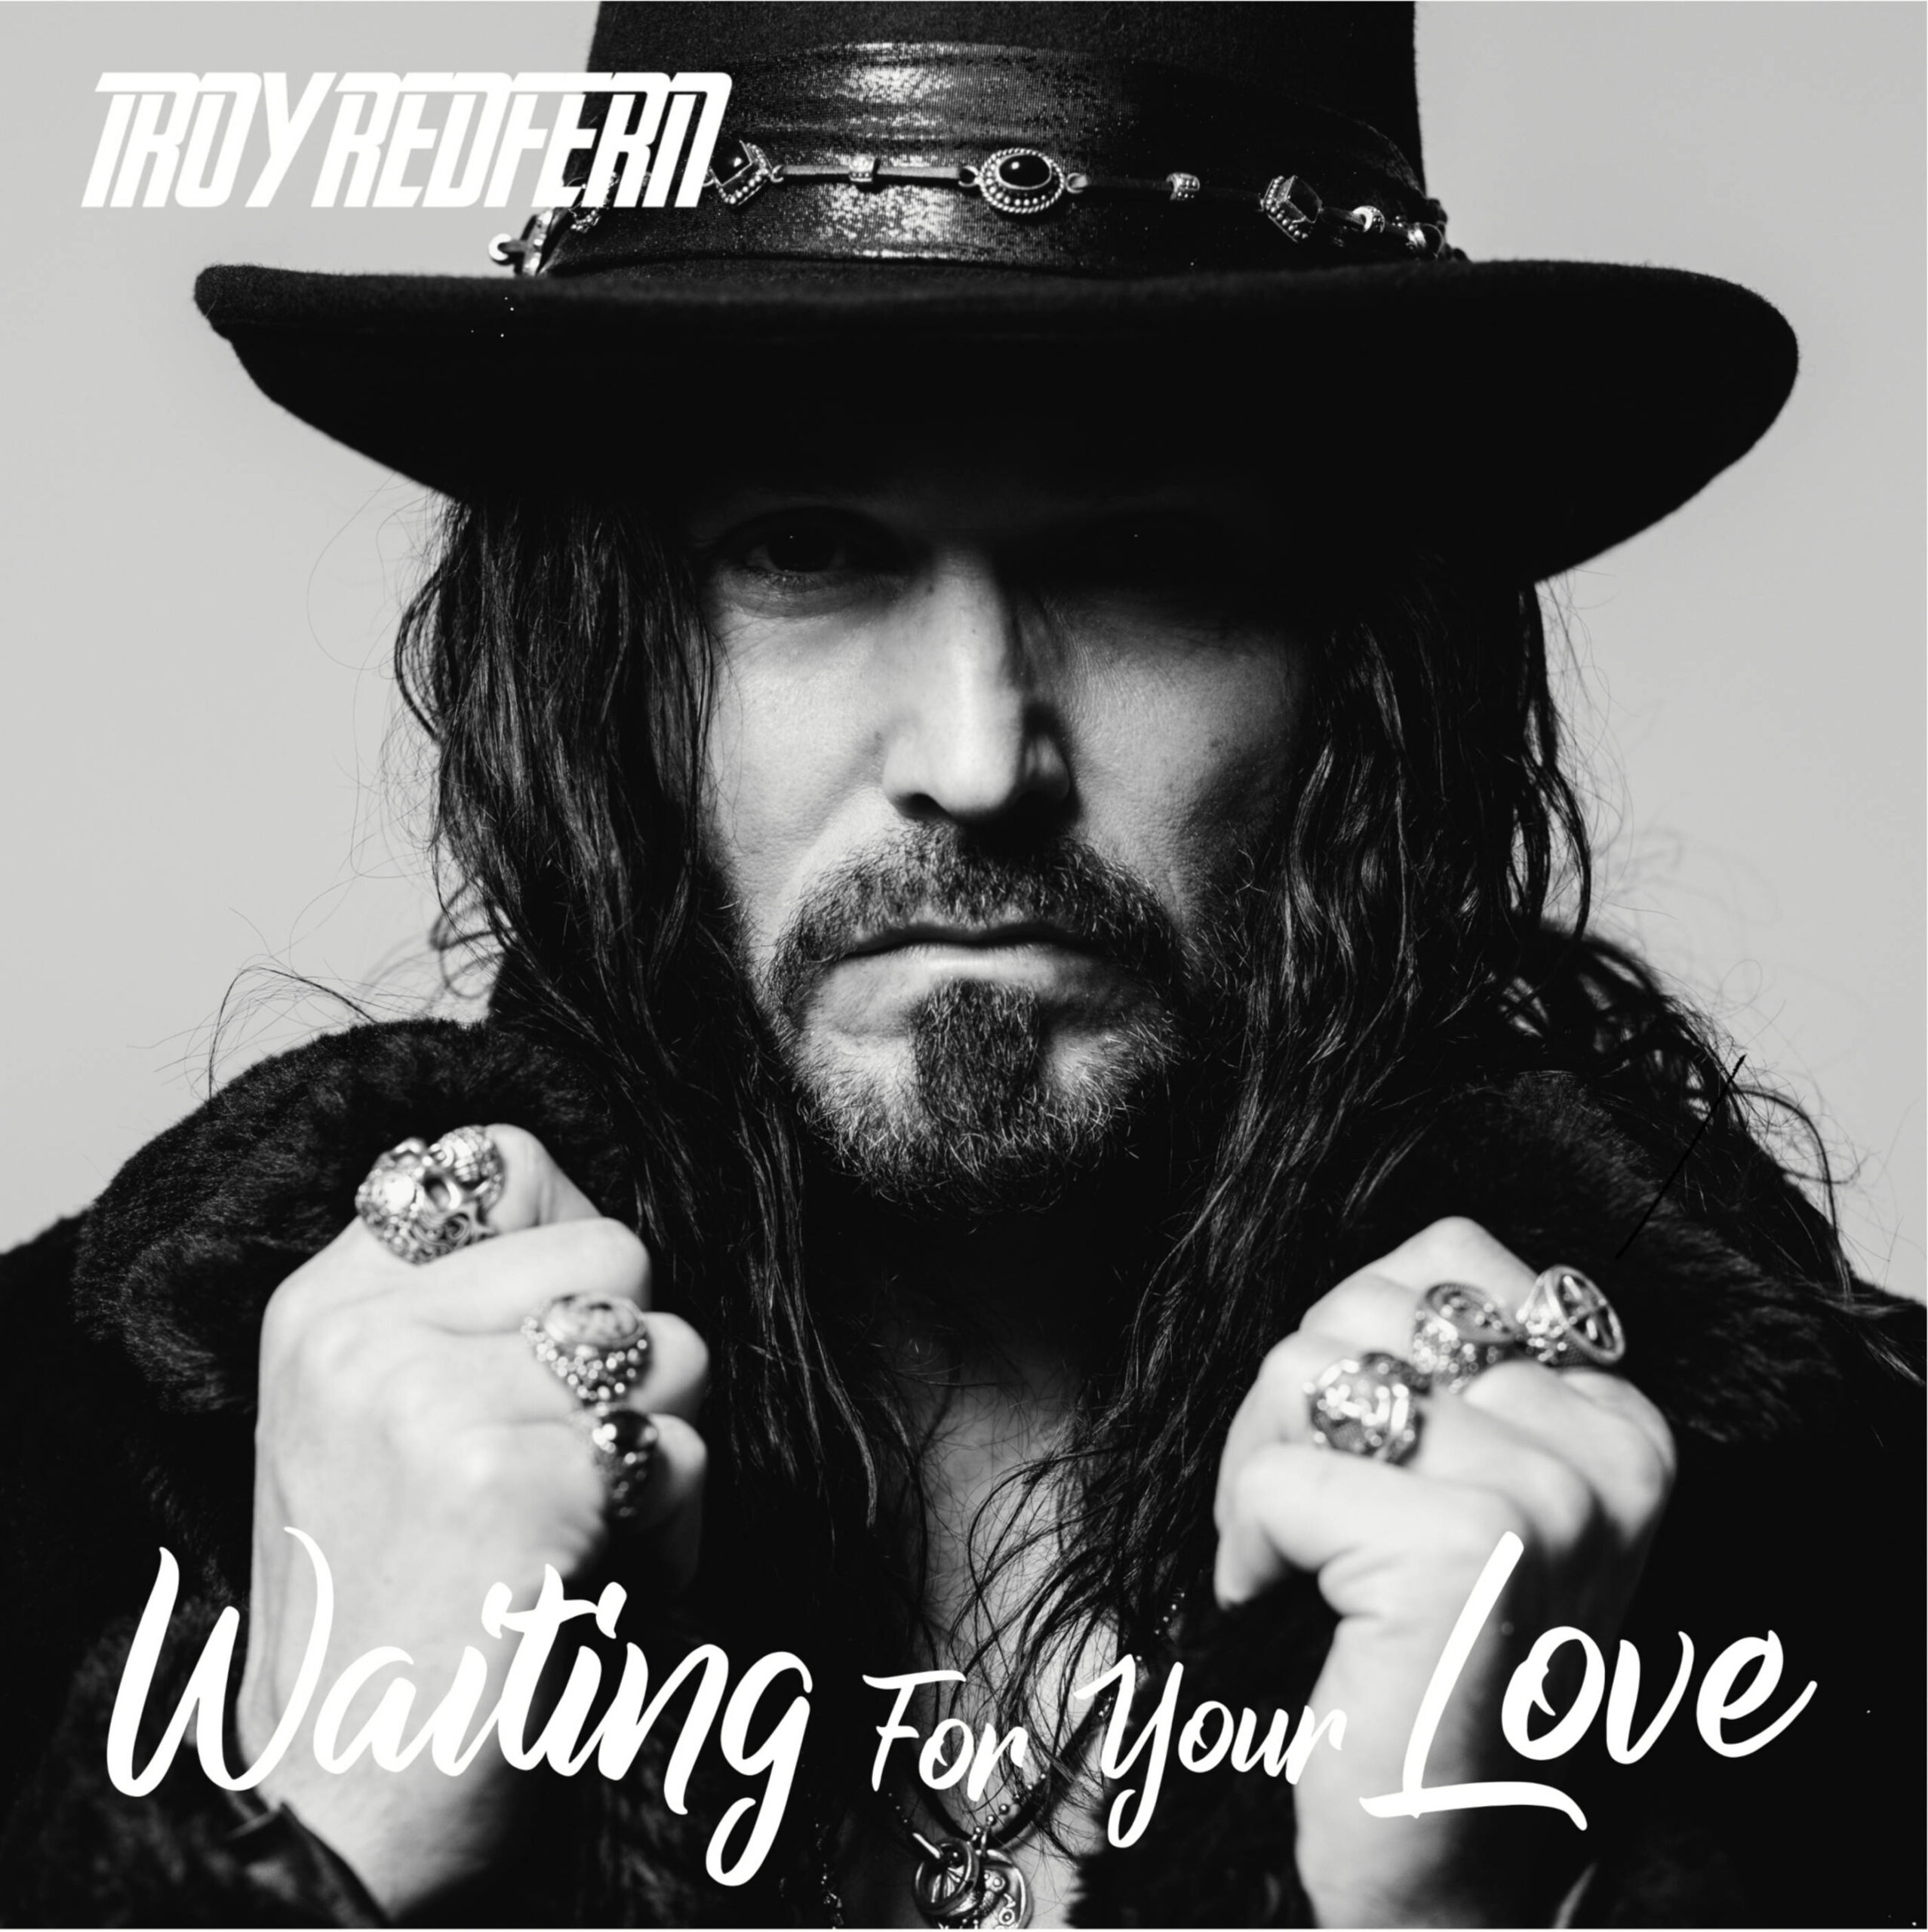 Troy Redfern_Waiting For Your Love_single_b